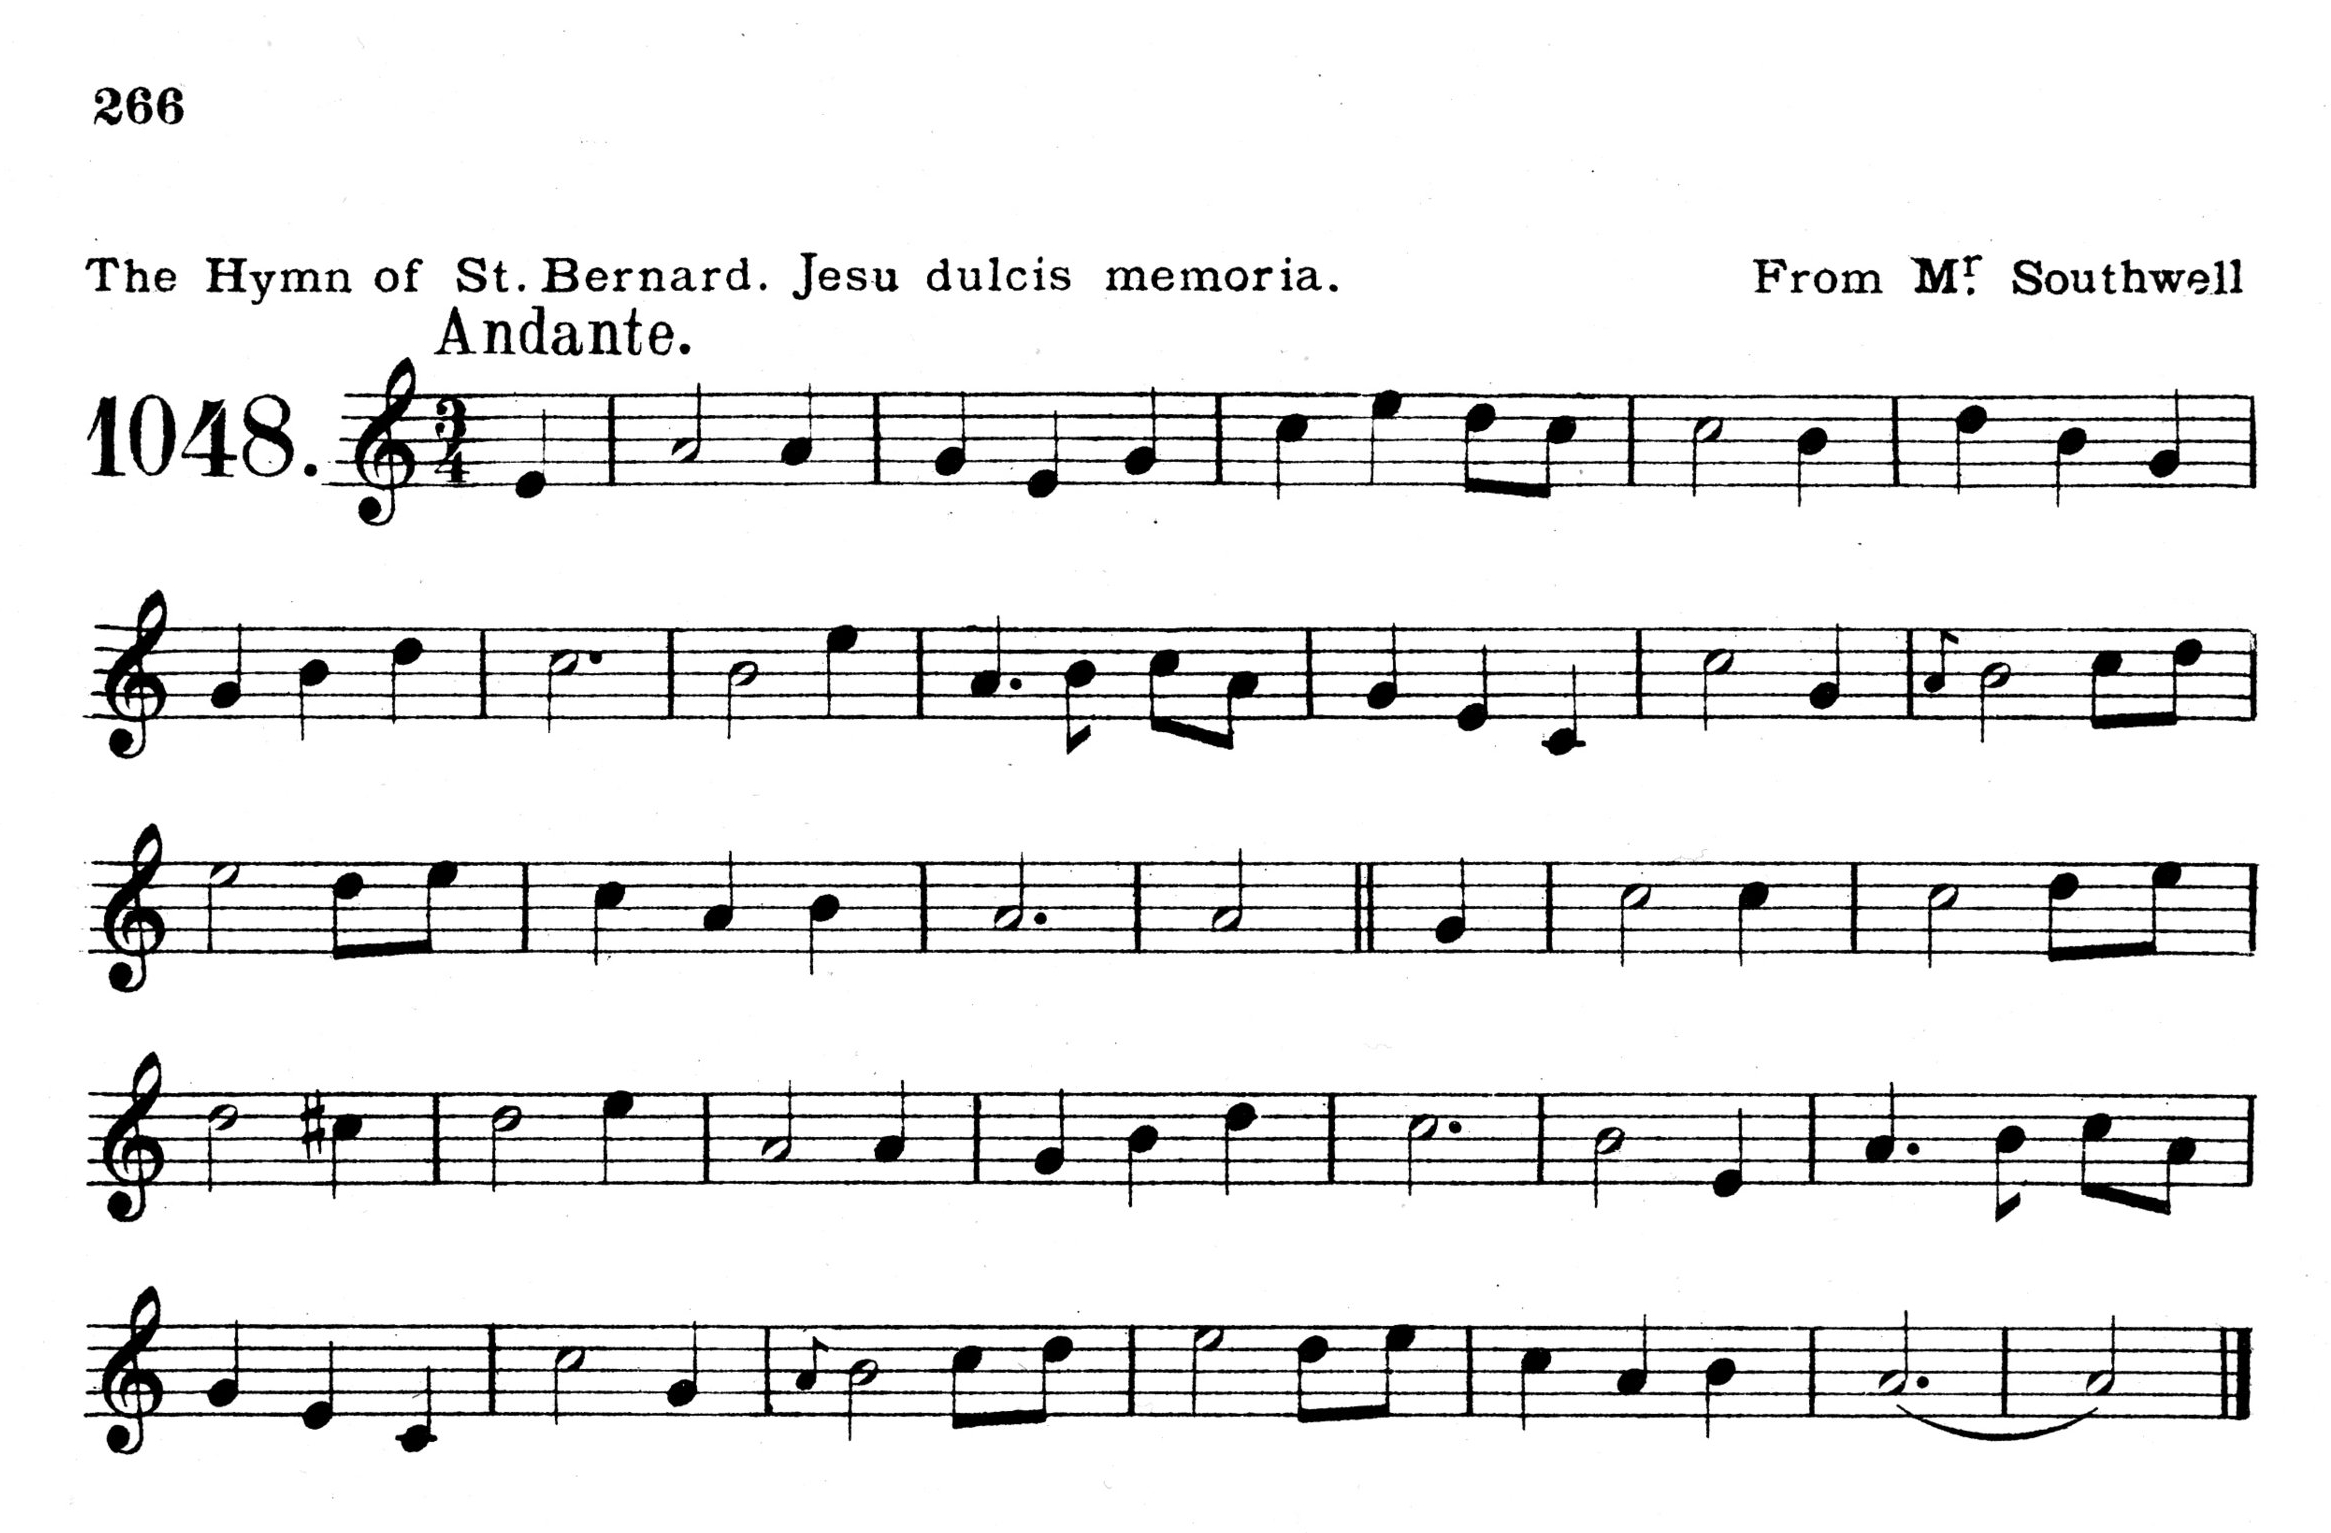 Fig. 8.   The Complete Collection of Irish Music  (London: Boosey & Co., 1902).